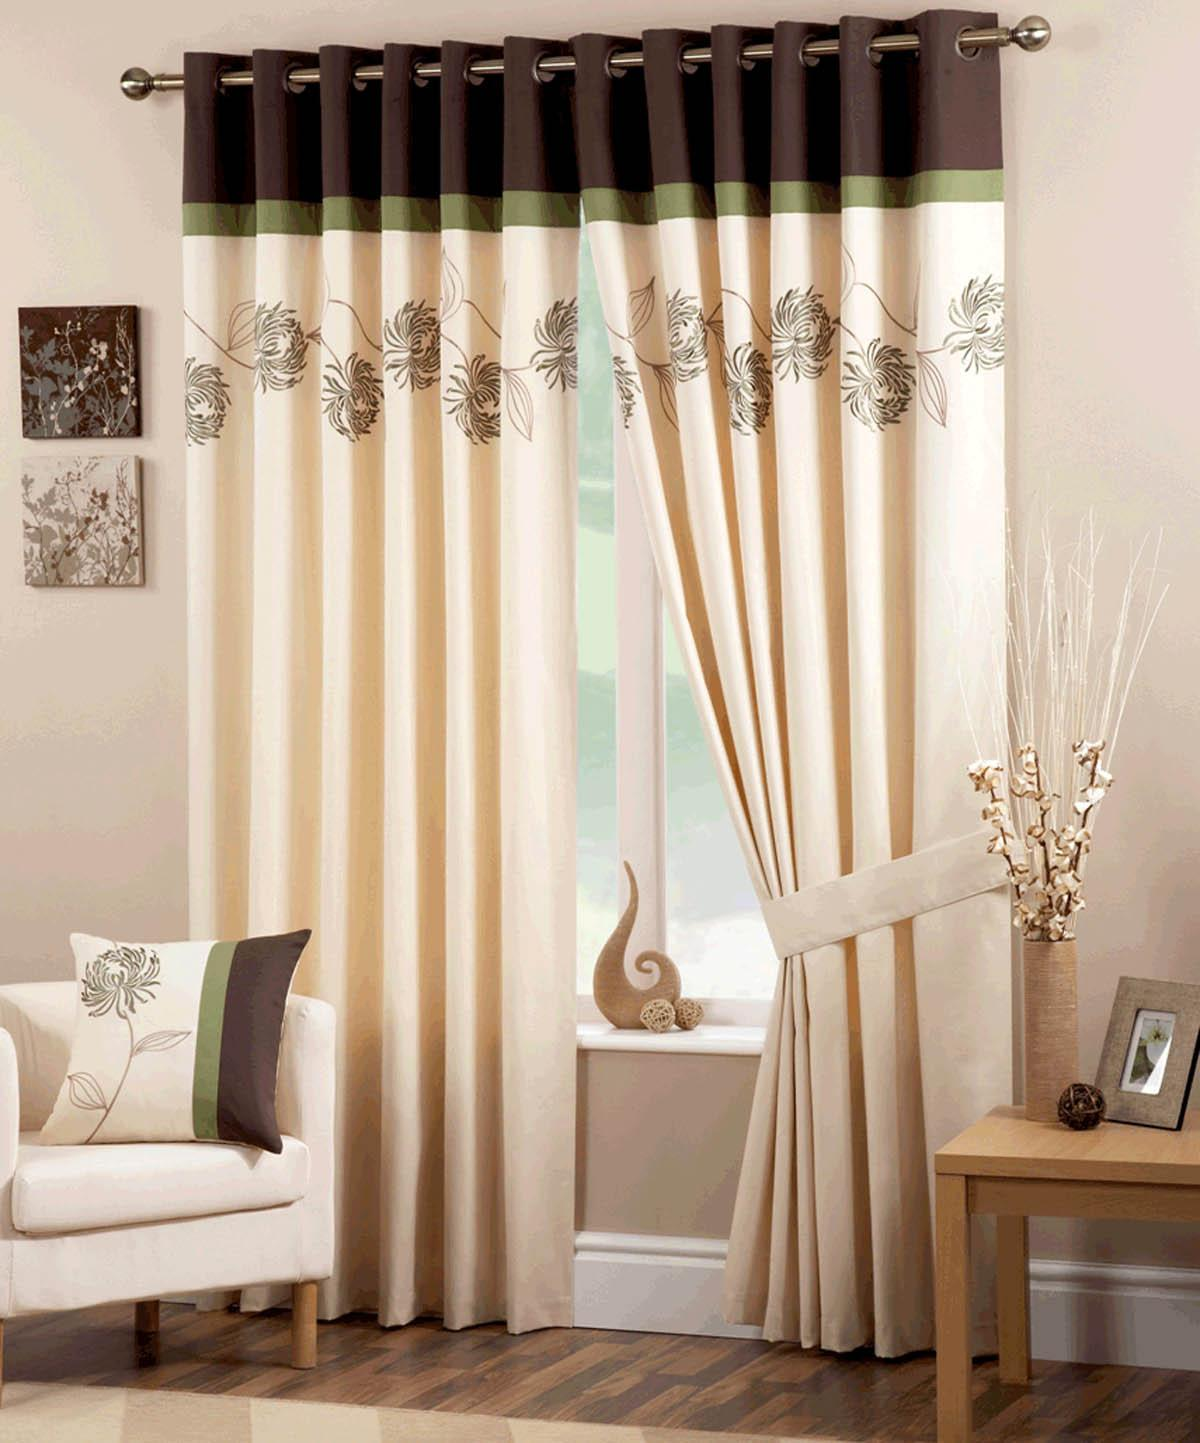 Green Petula Ready Made Eyelet Curtains